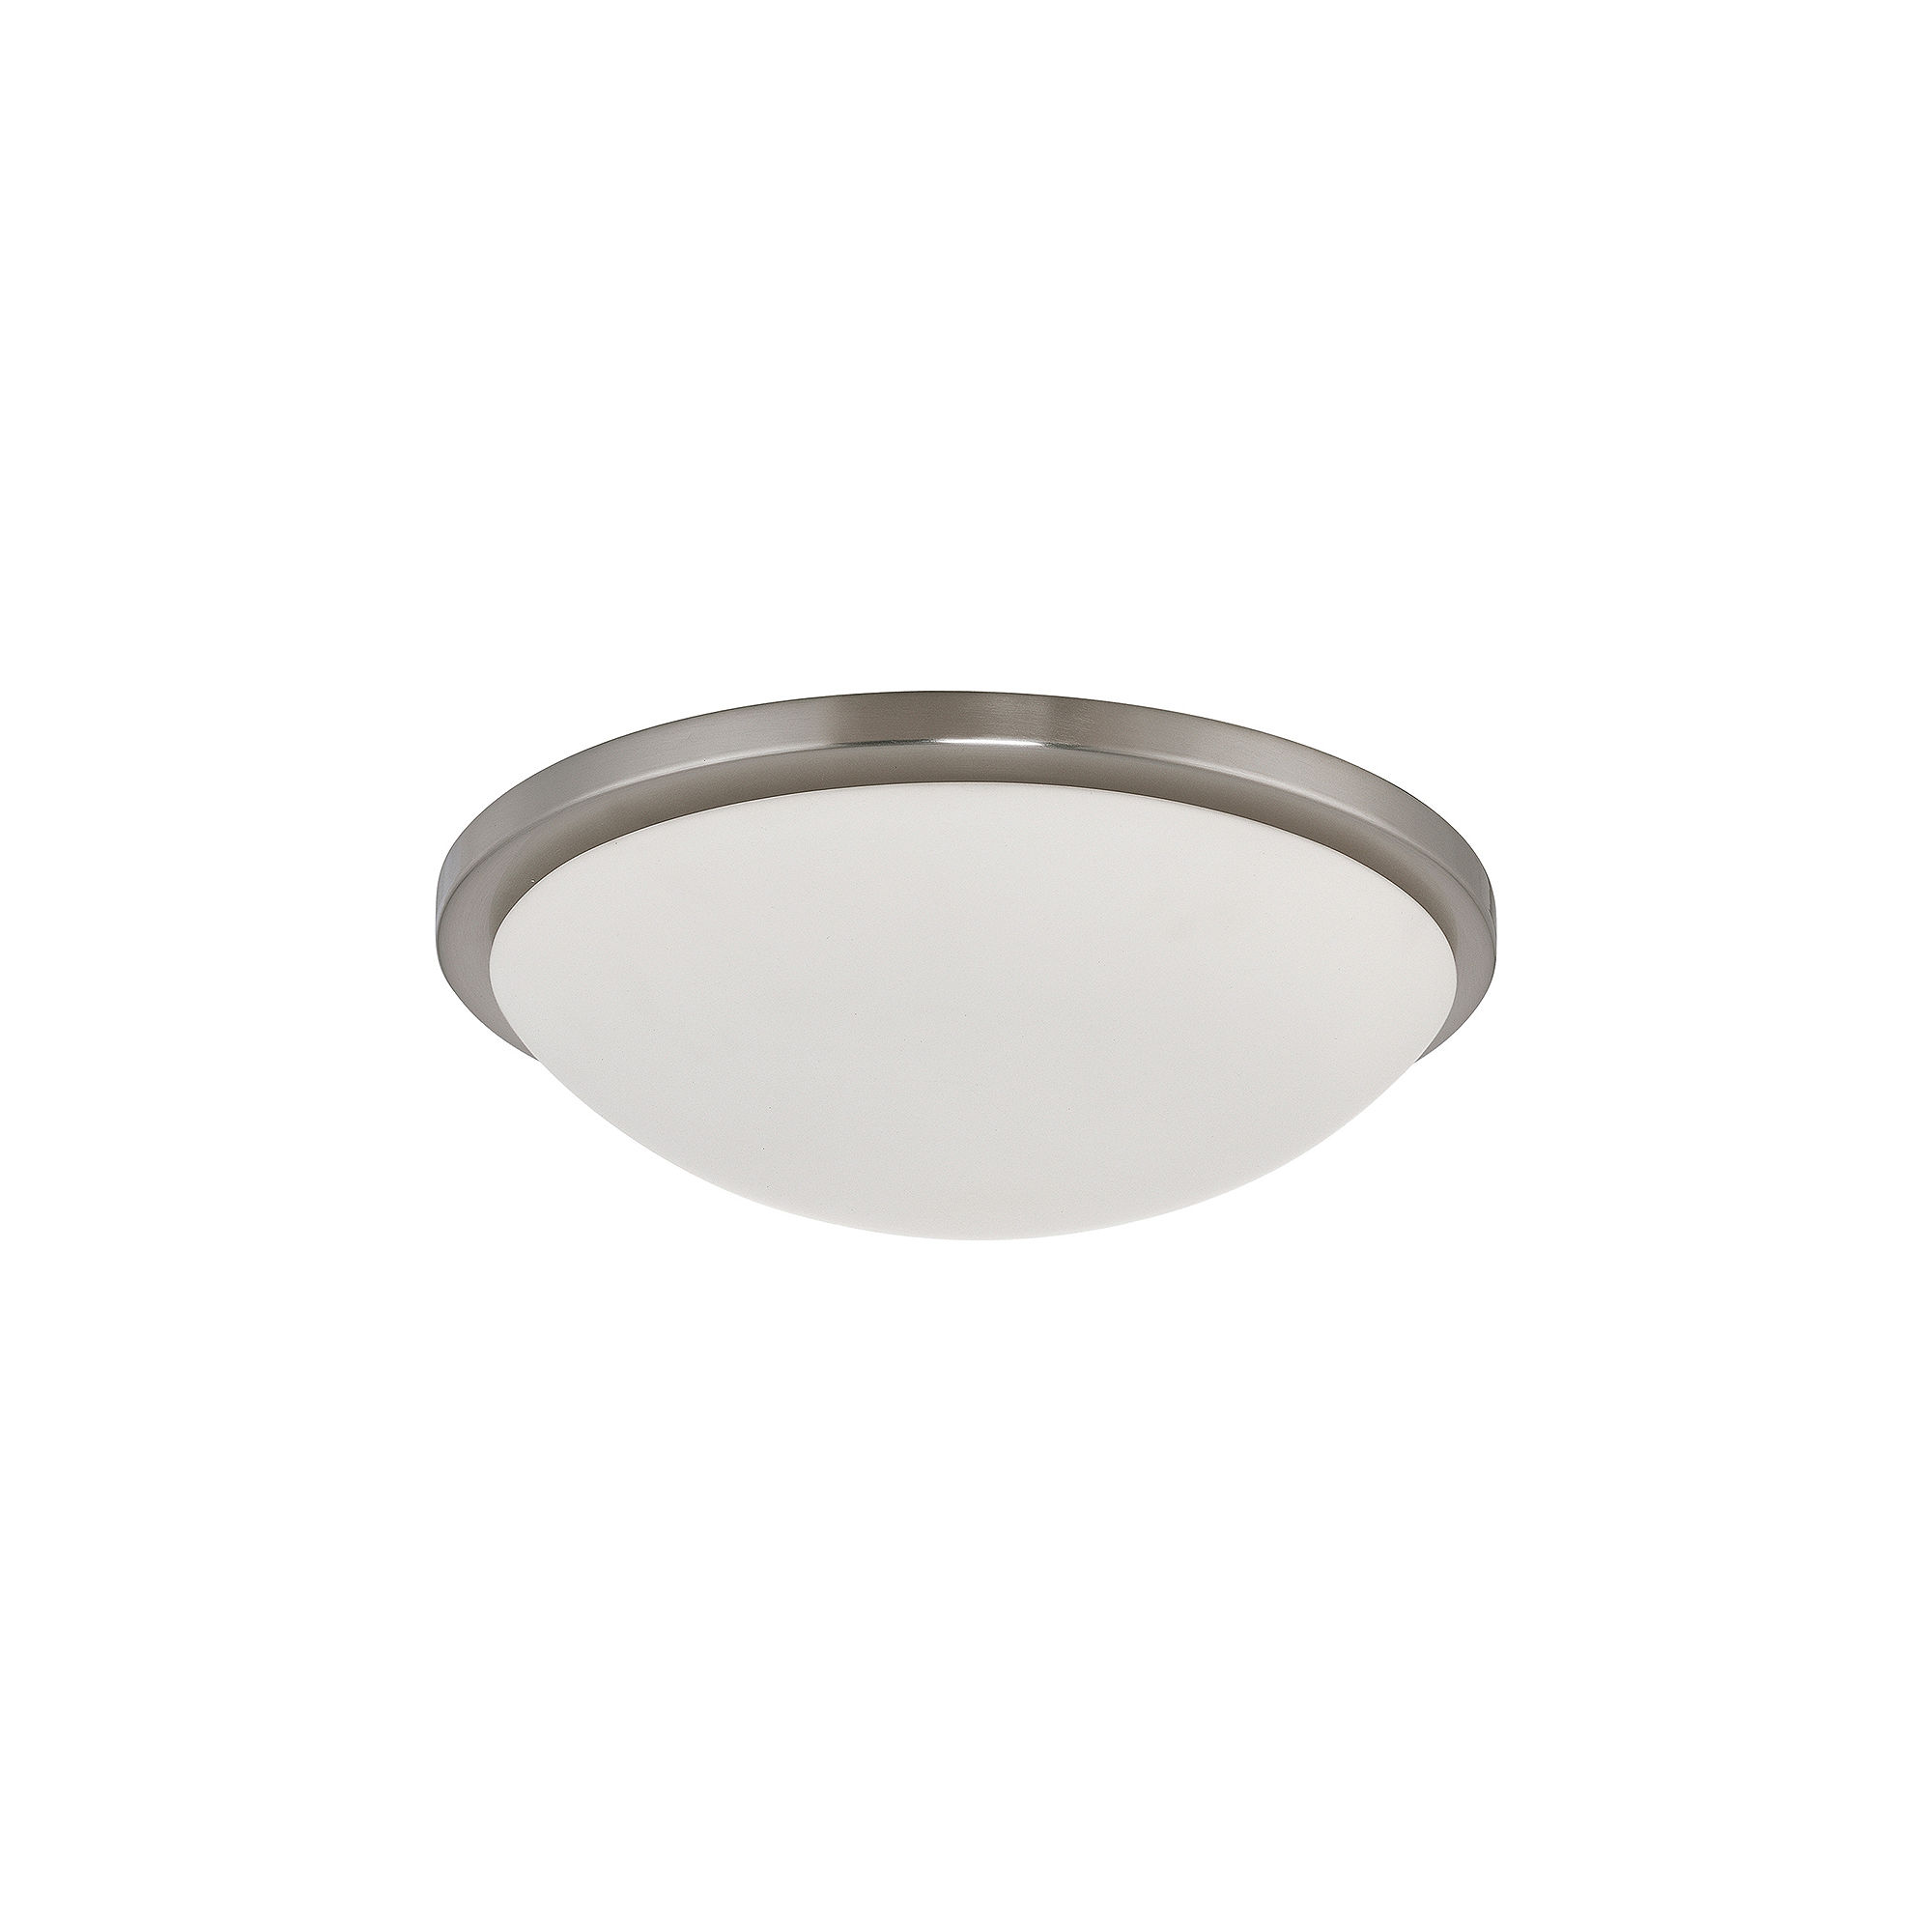 Filament Design 4-Light Brushed Nickel Flush Mount